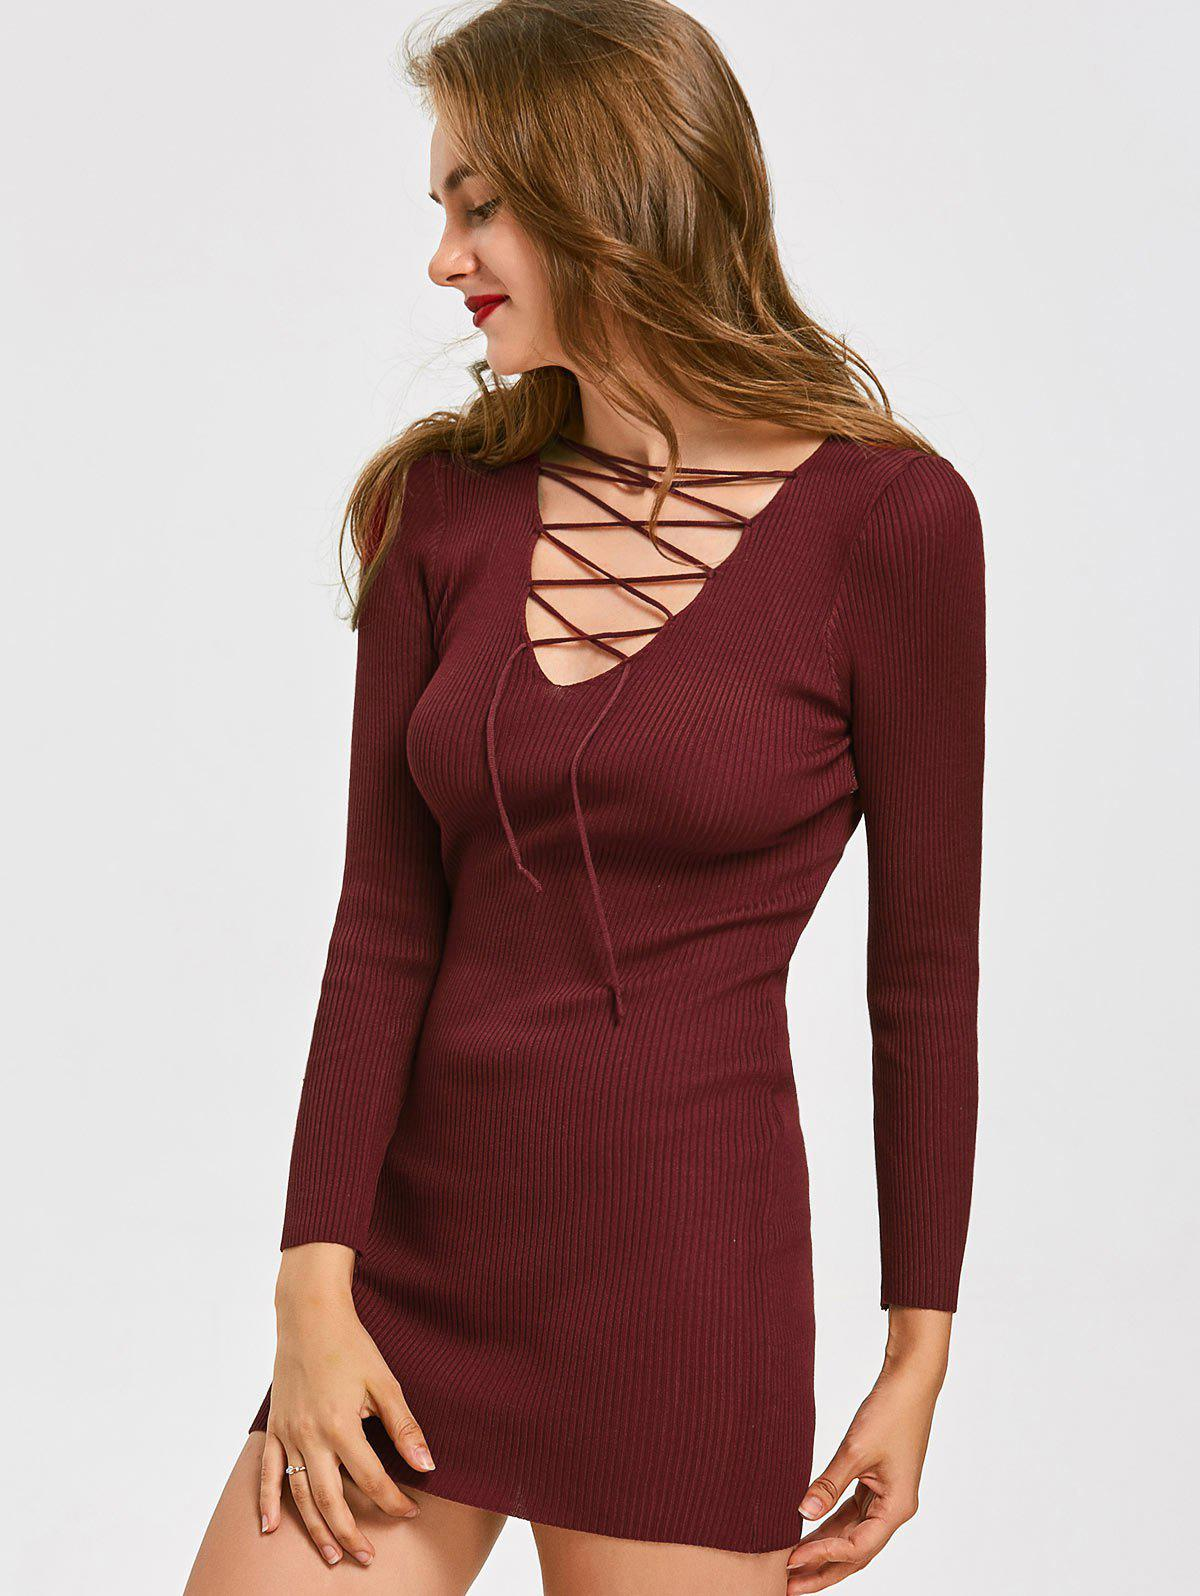 Lace Up Ribbed Mini Knitted Dress 232342102